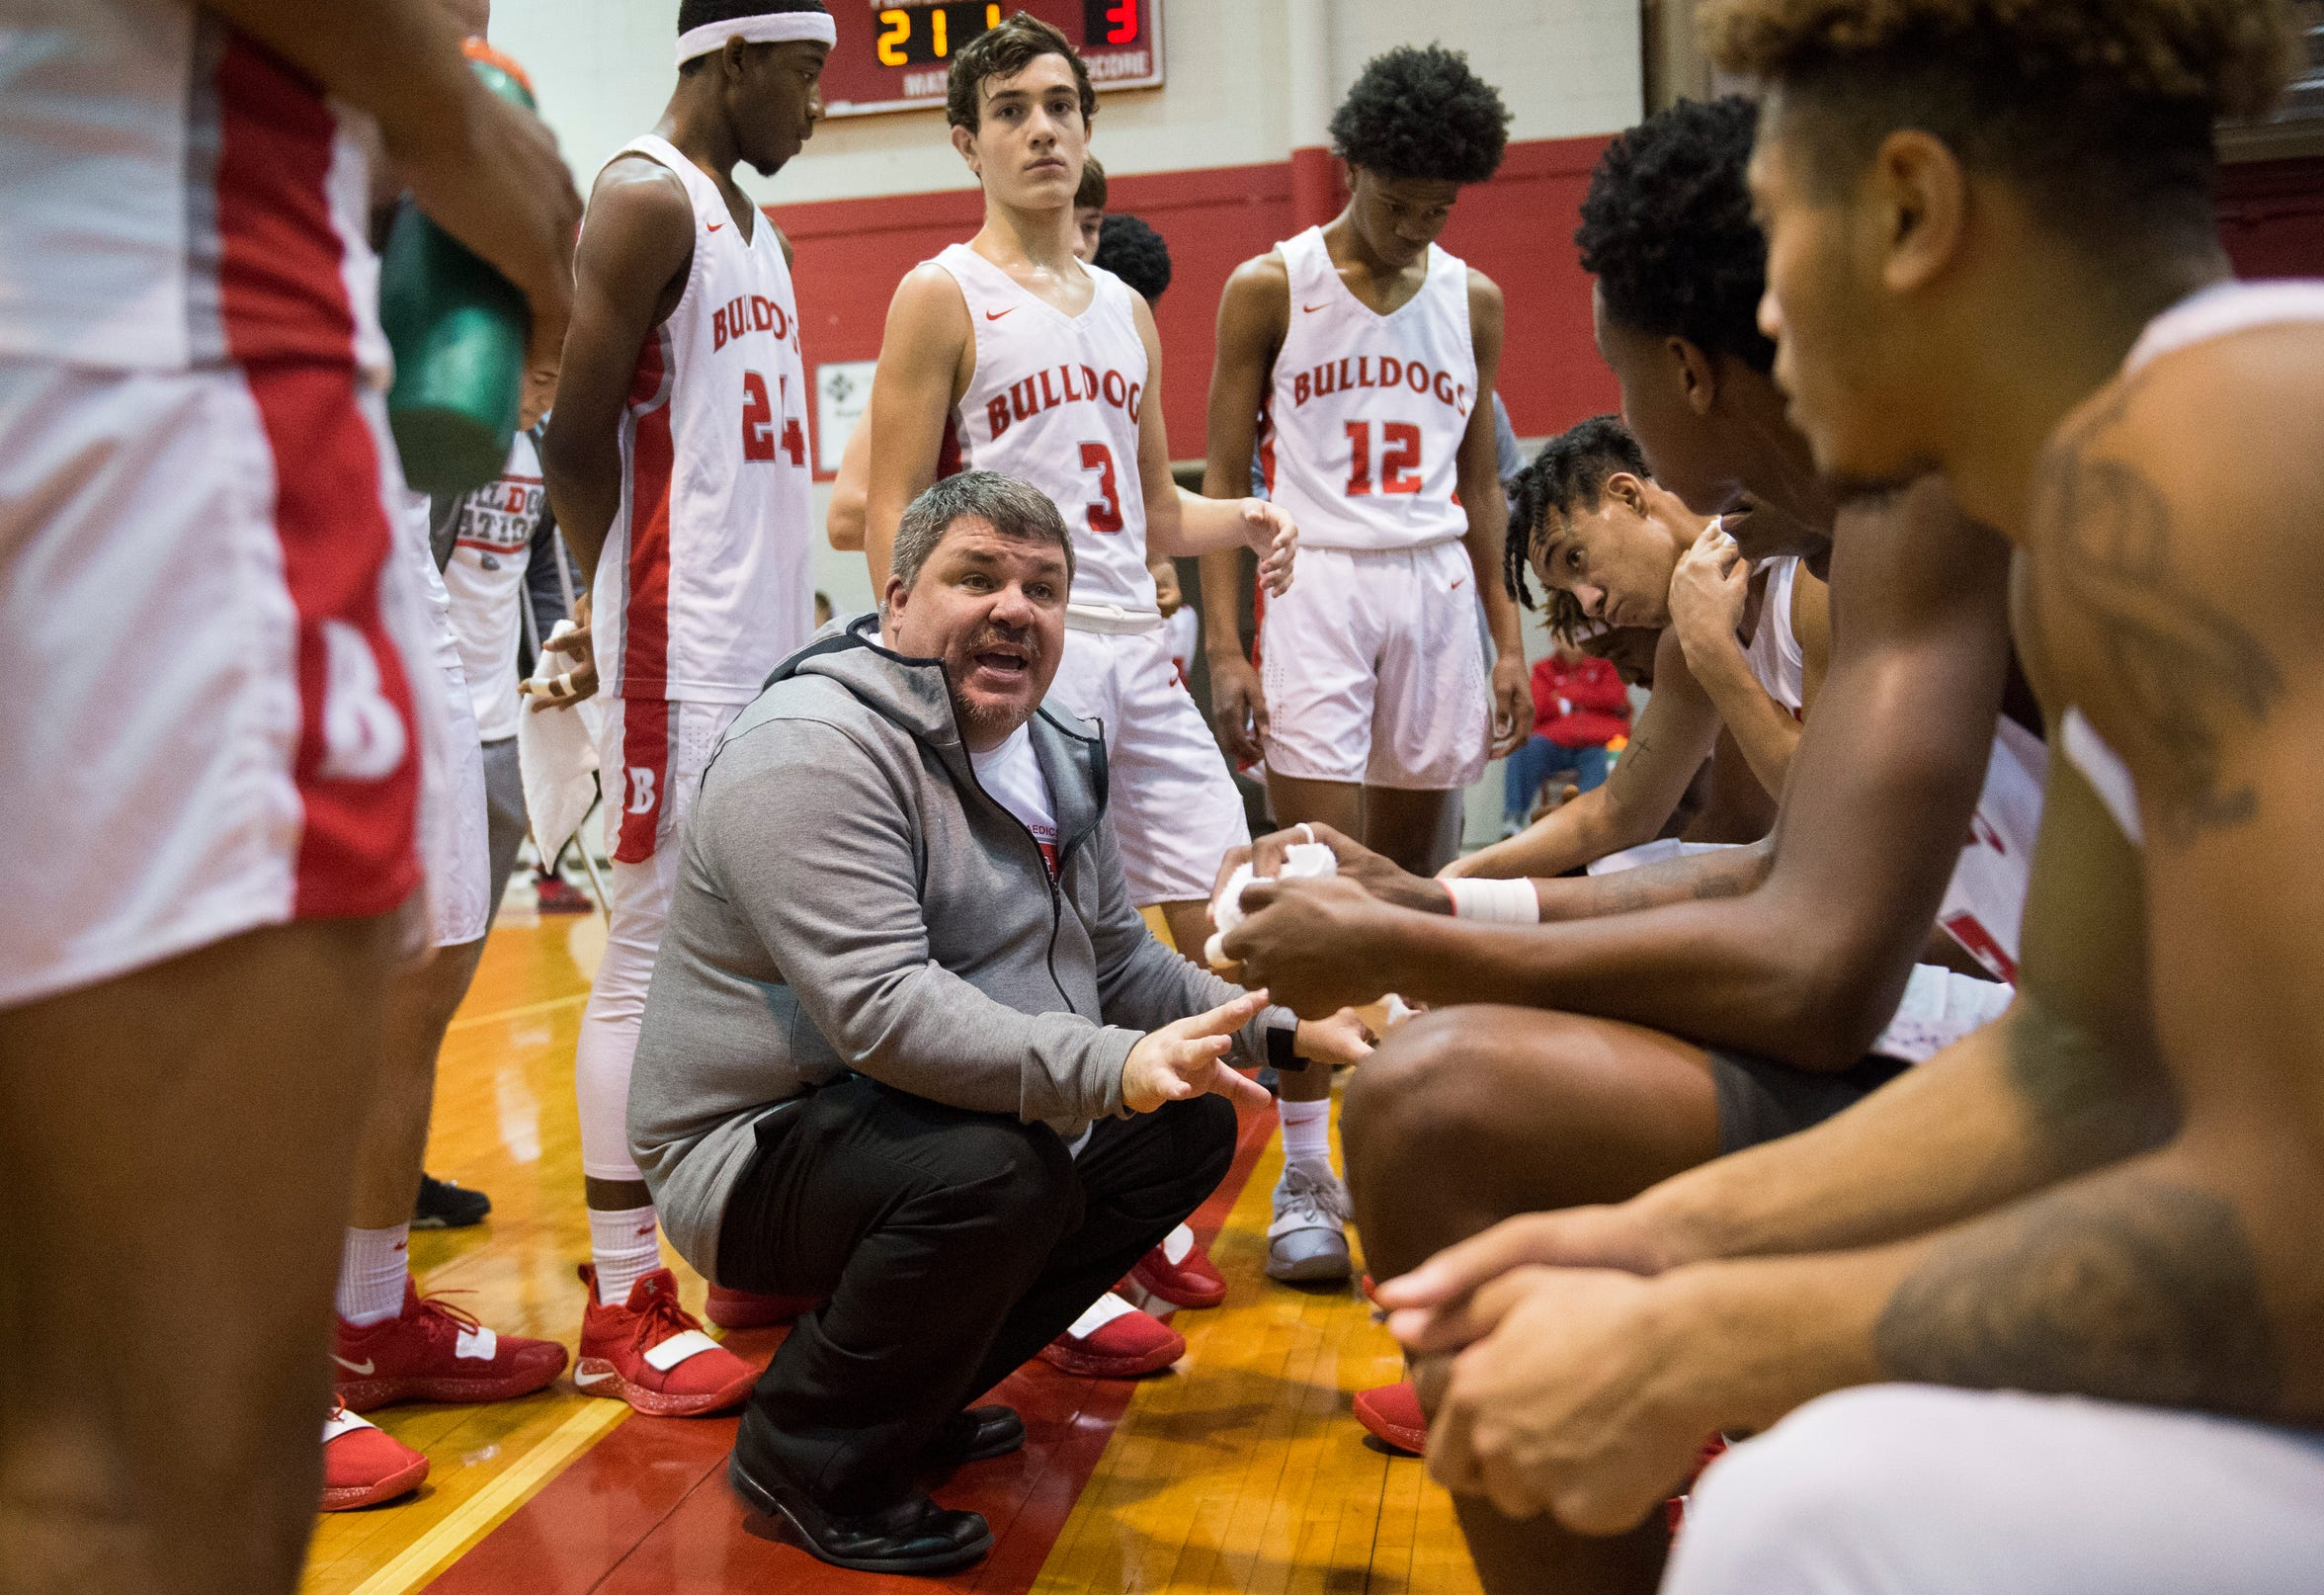 Bosse Head Coach Shane Burkhart directs players during a timeout in the Bosse vs Sanford game of the Bosse Classic Saturday, Dec. 15, 2018.